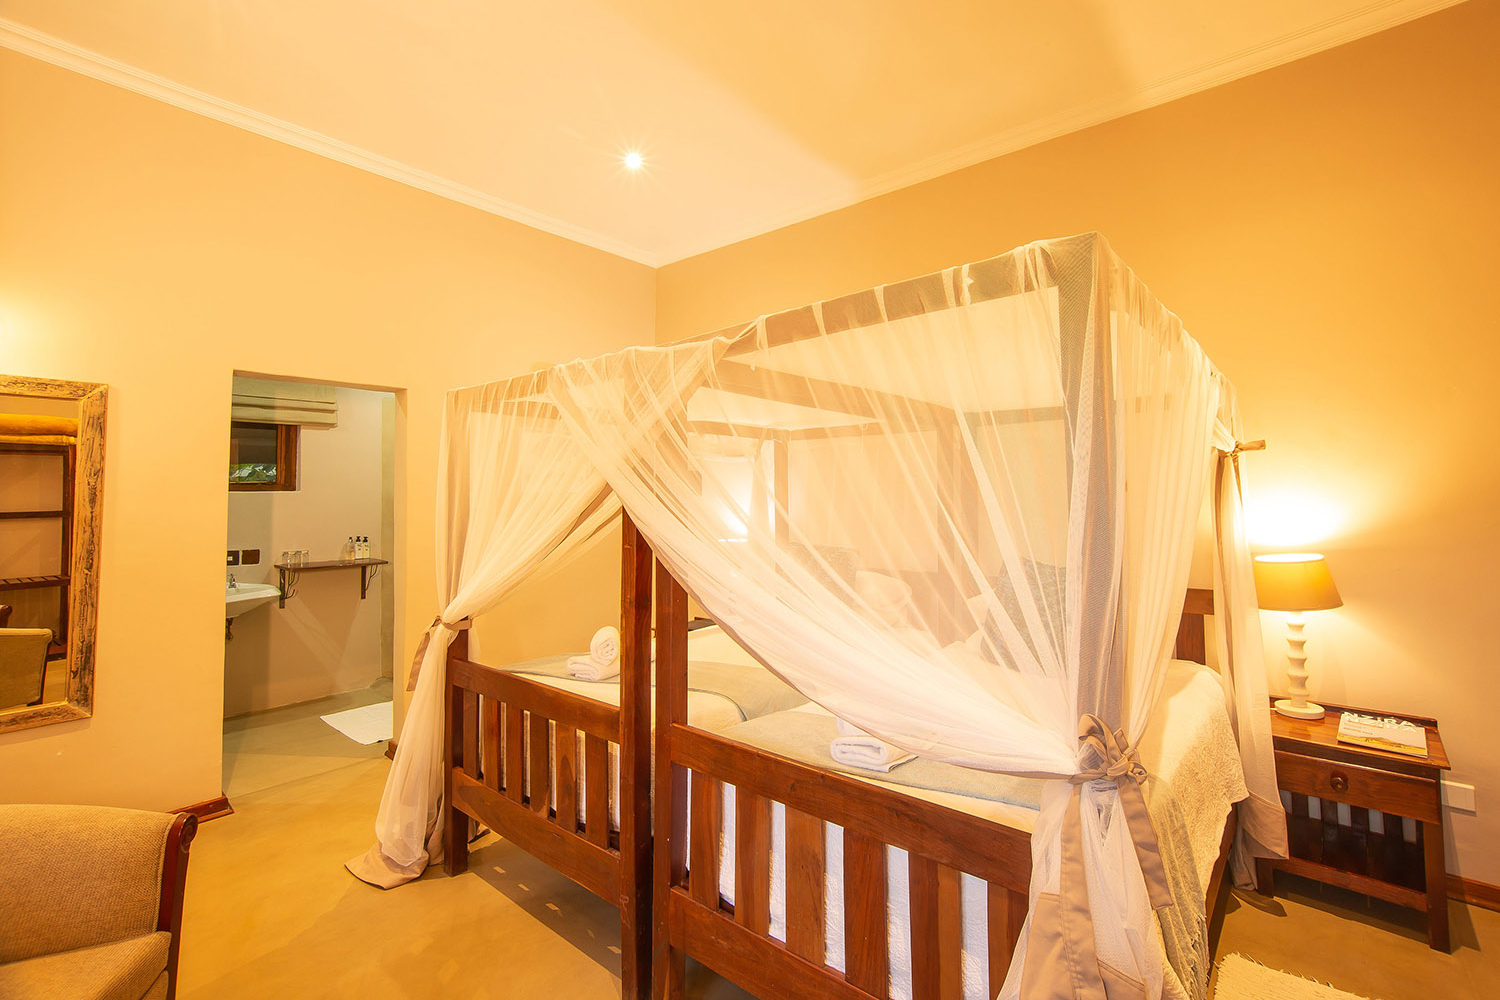 bayete guest lodge victoria-falls-accommodation-zimbabwe-zambia-in-style-spacious-rooms-room